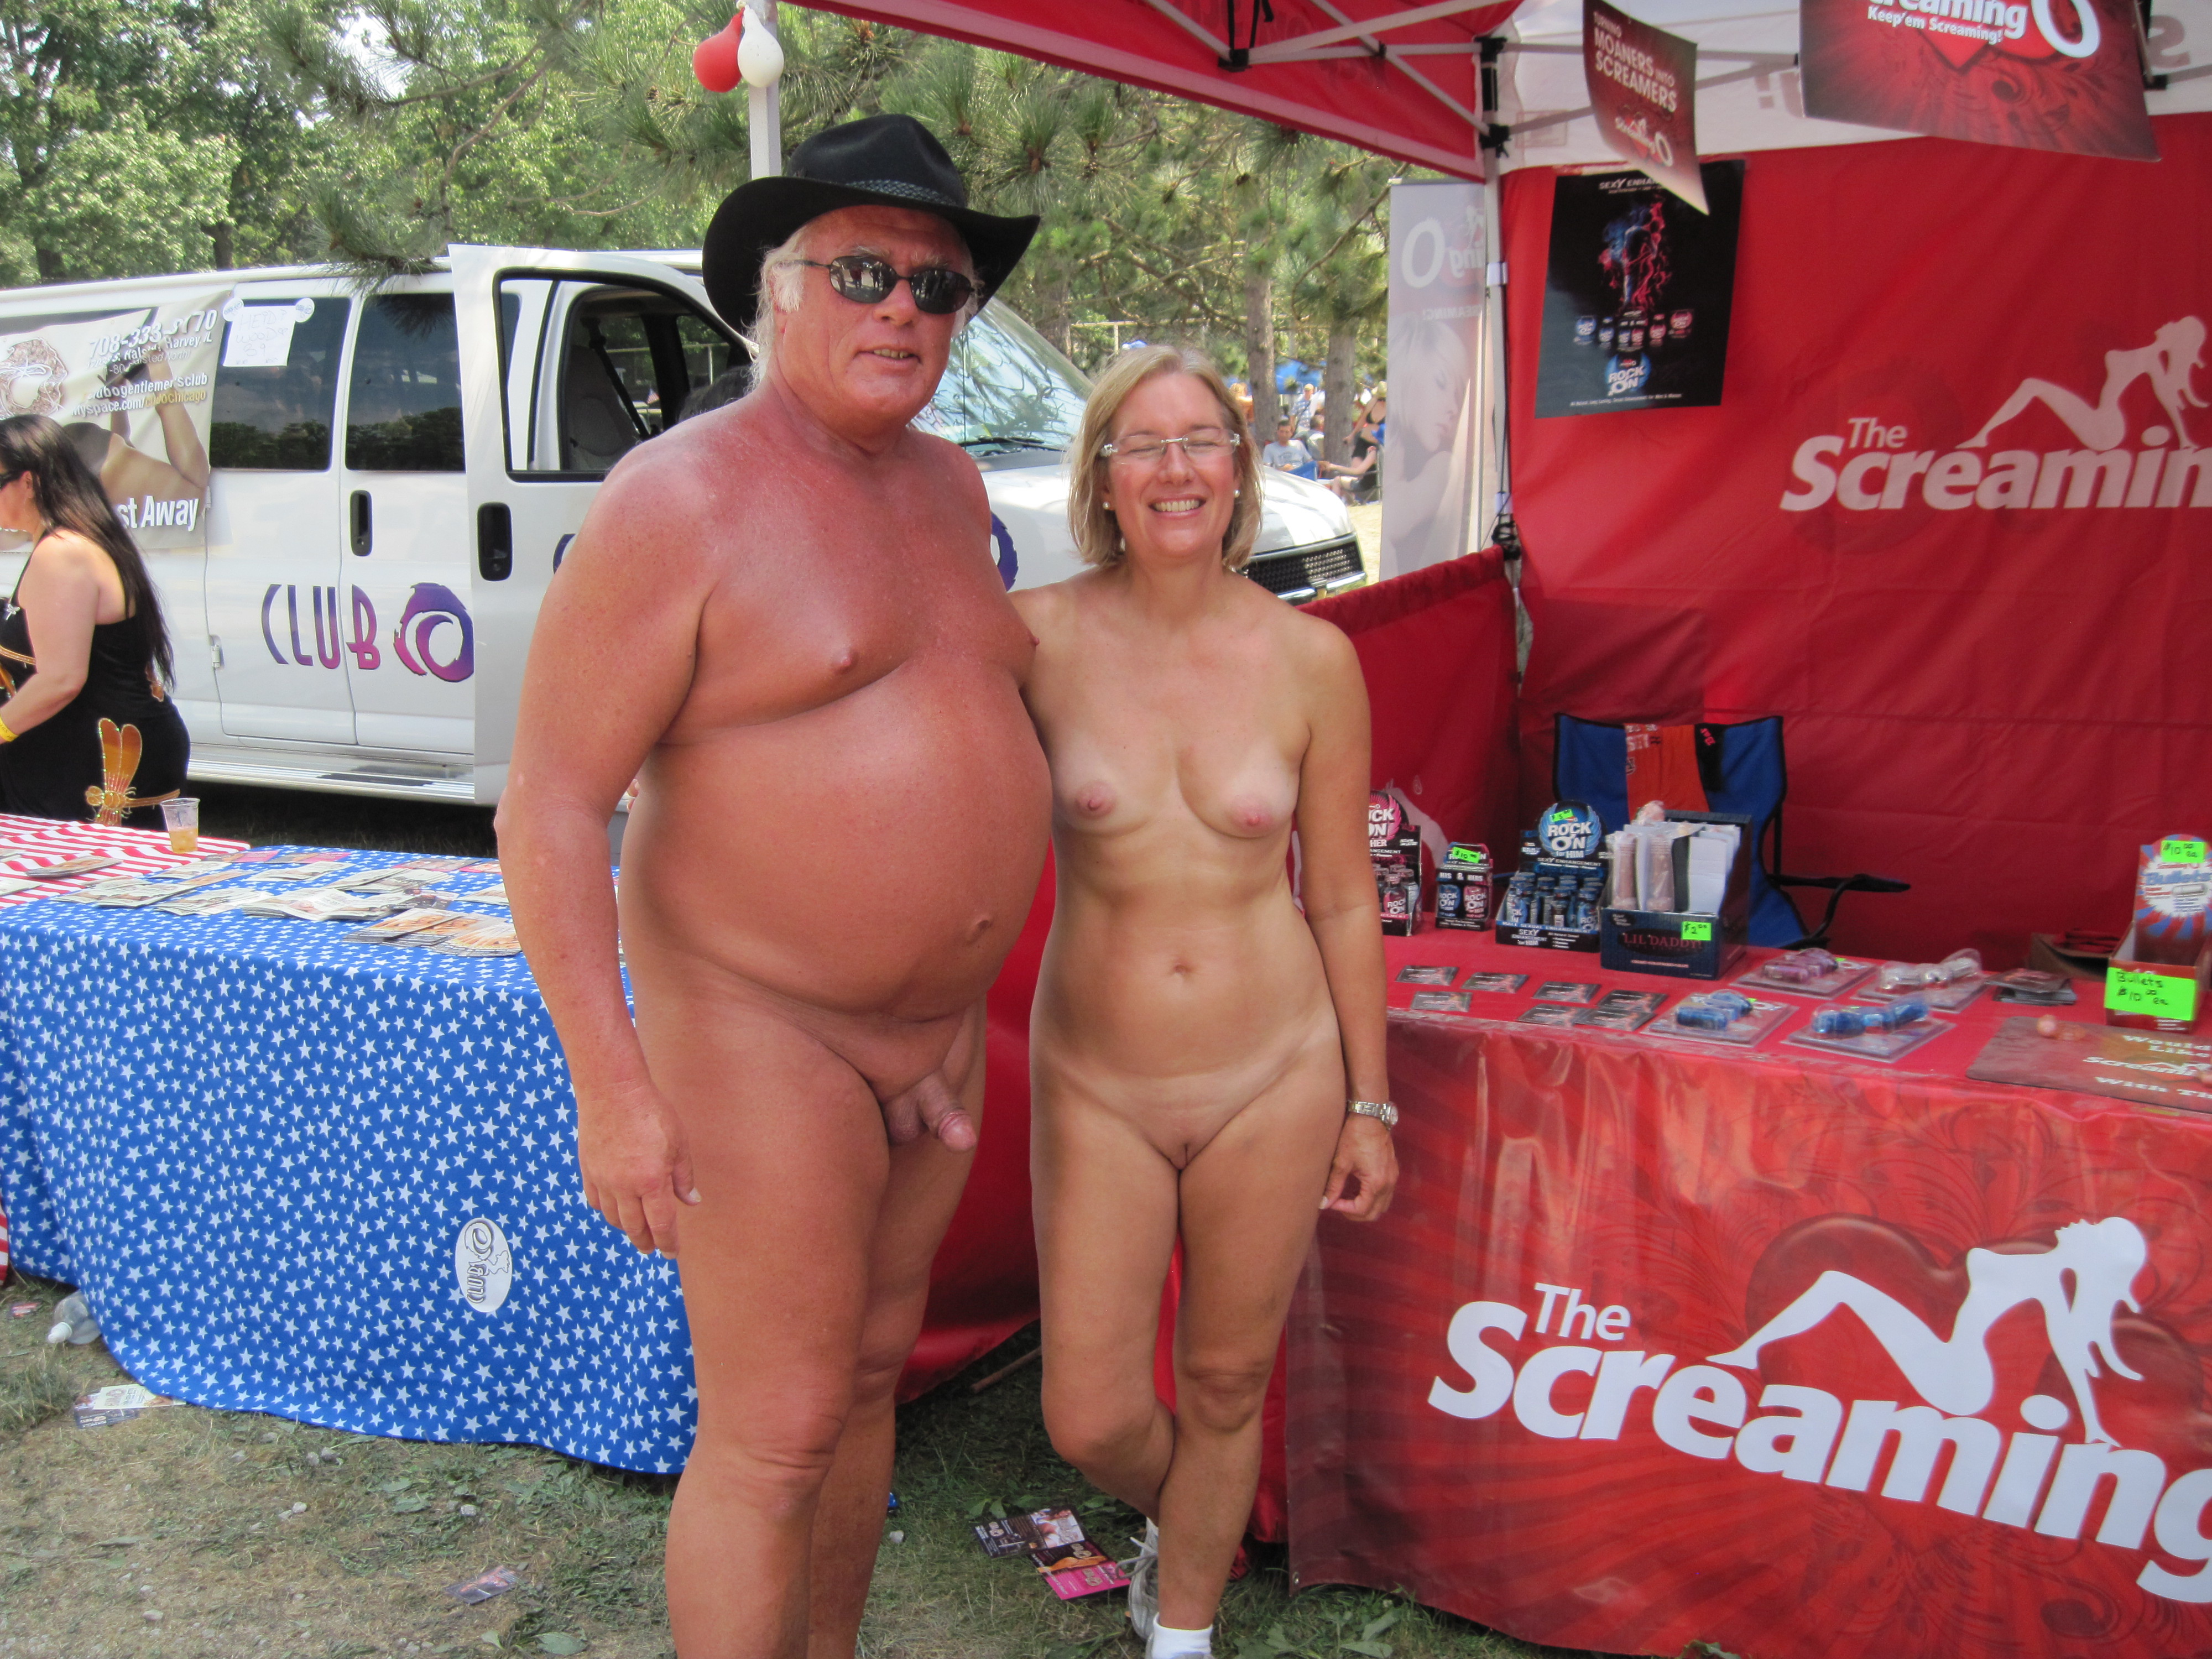 nudes a poppin File:Nudes-A-Poppin' 2011-Sun198.jpg